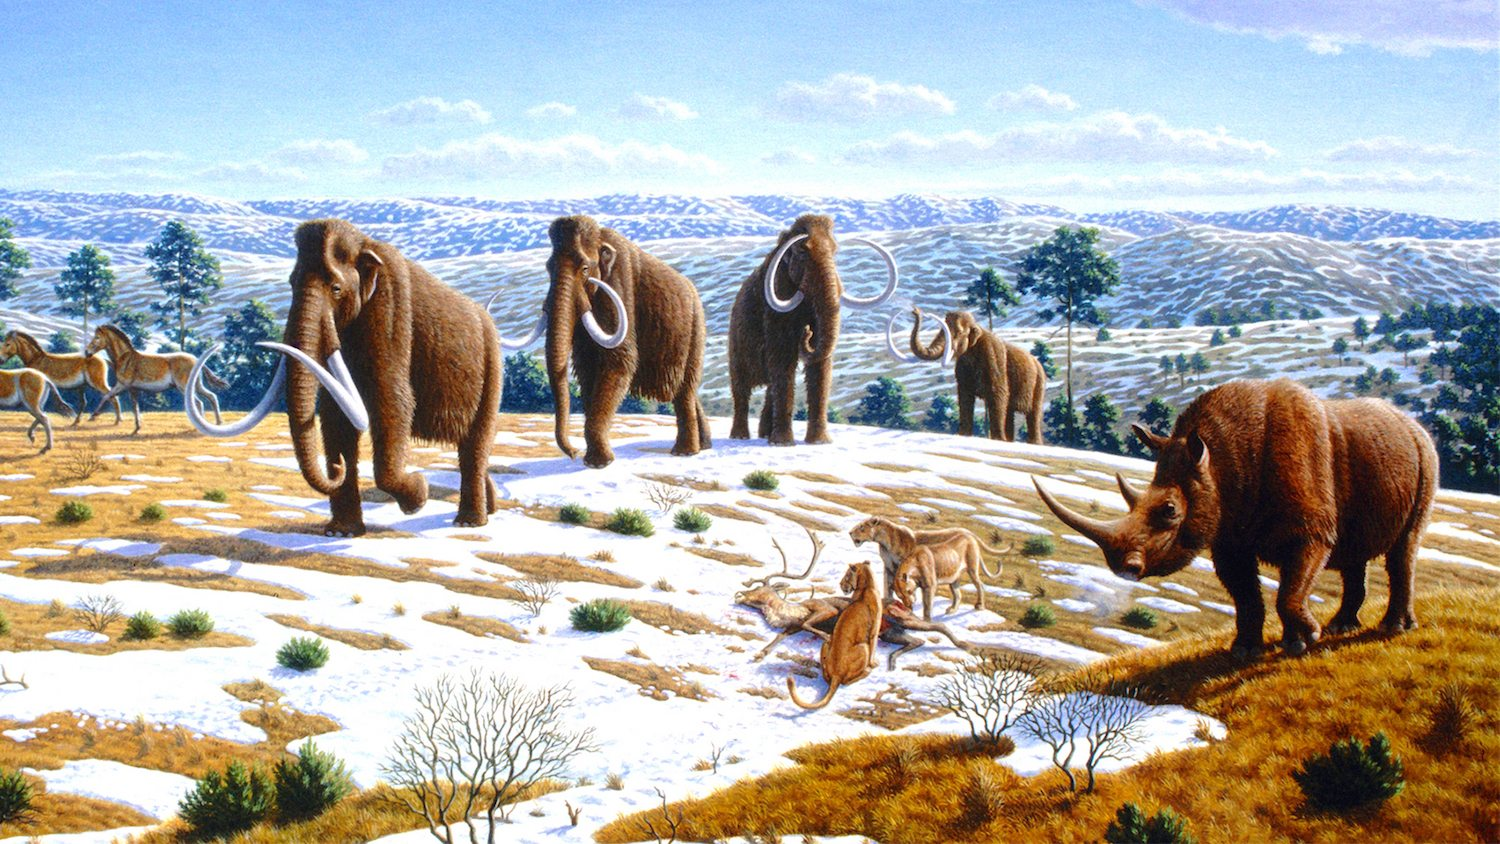 Image: Mammoth, Wooly Rhino and Saber Tooth Cat illustration